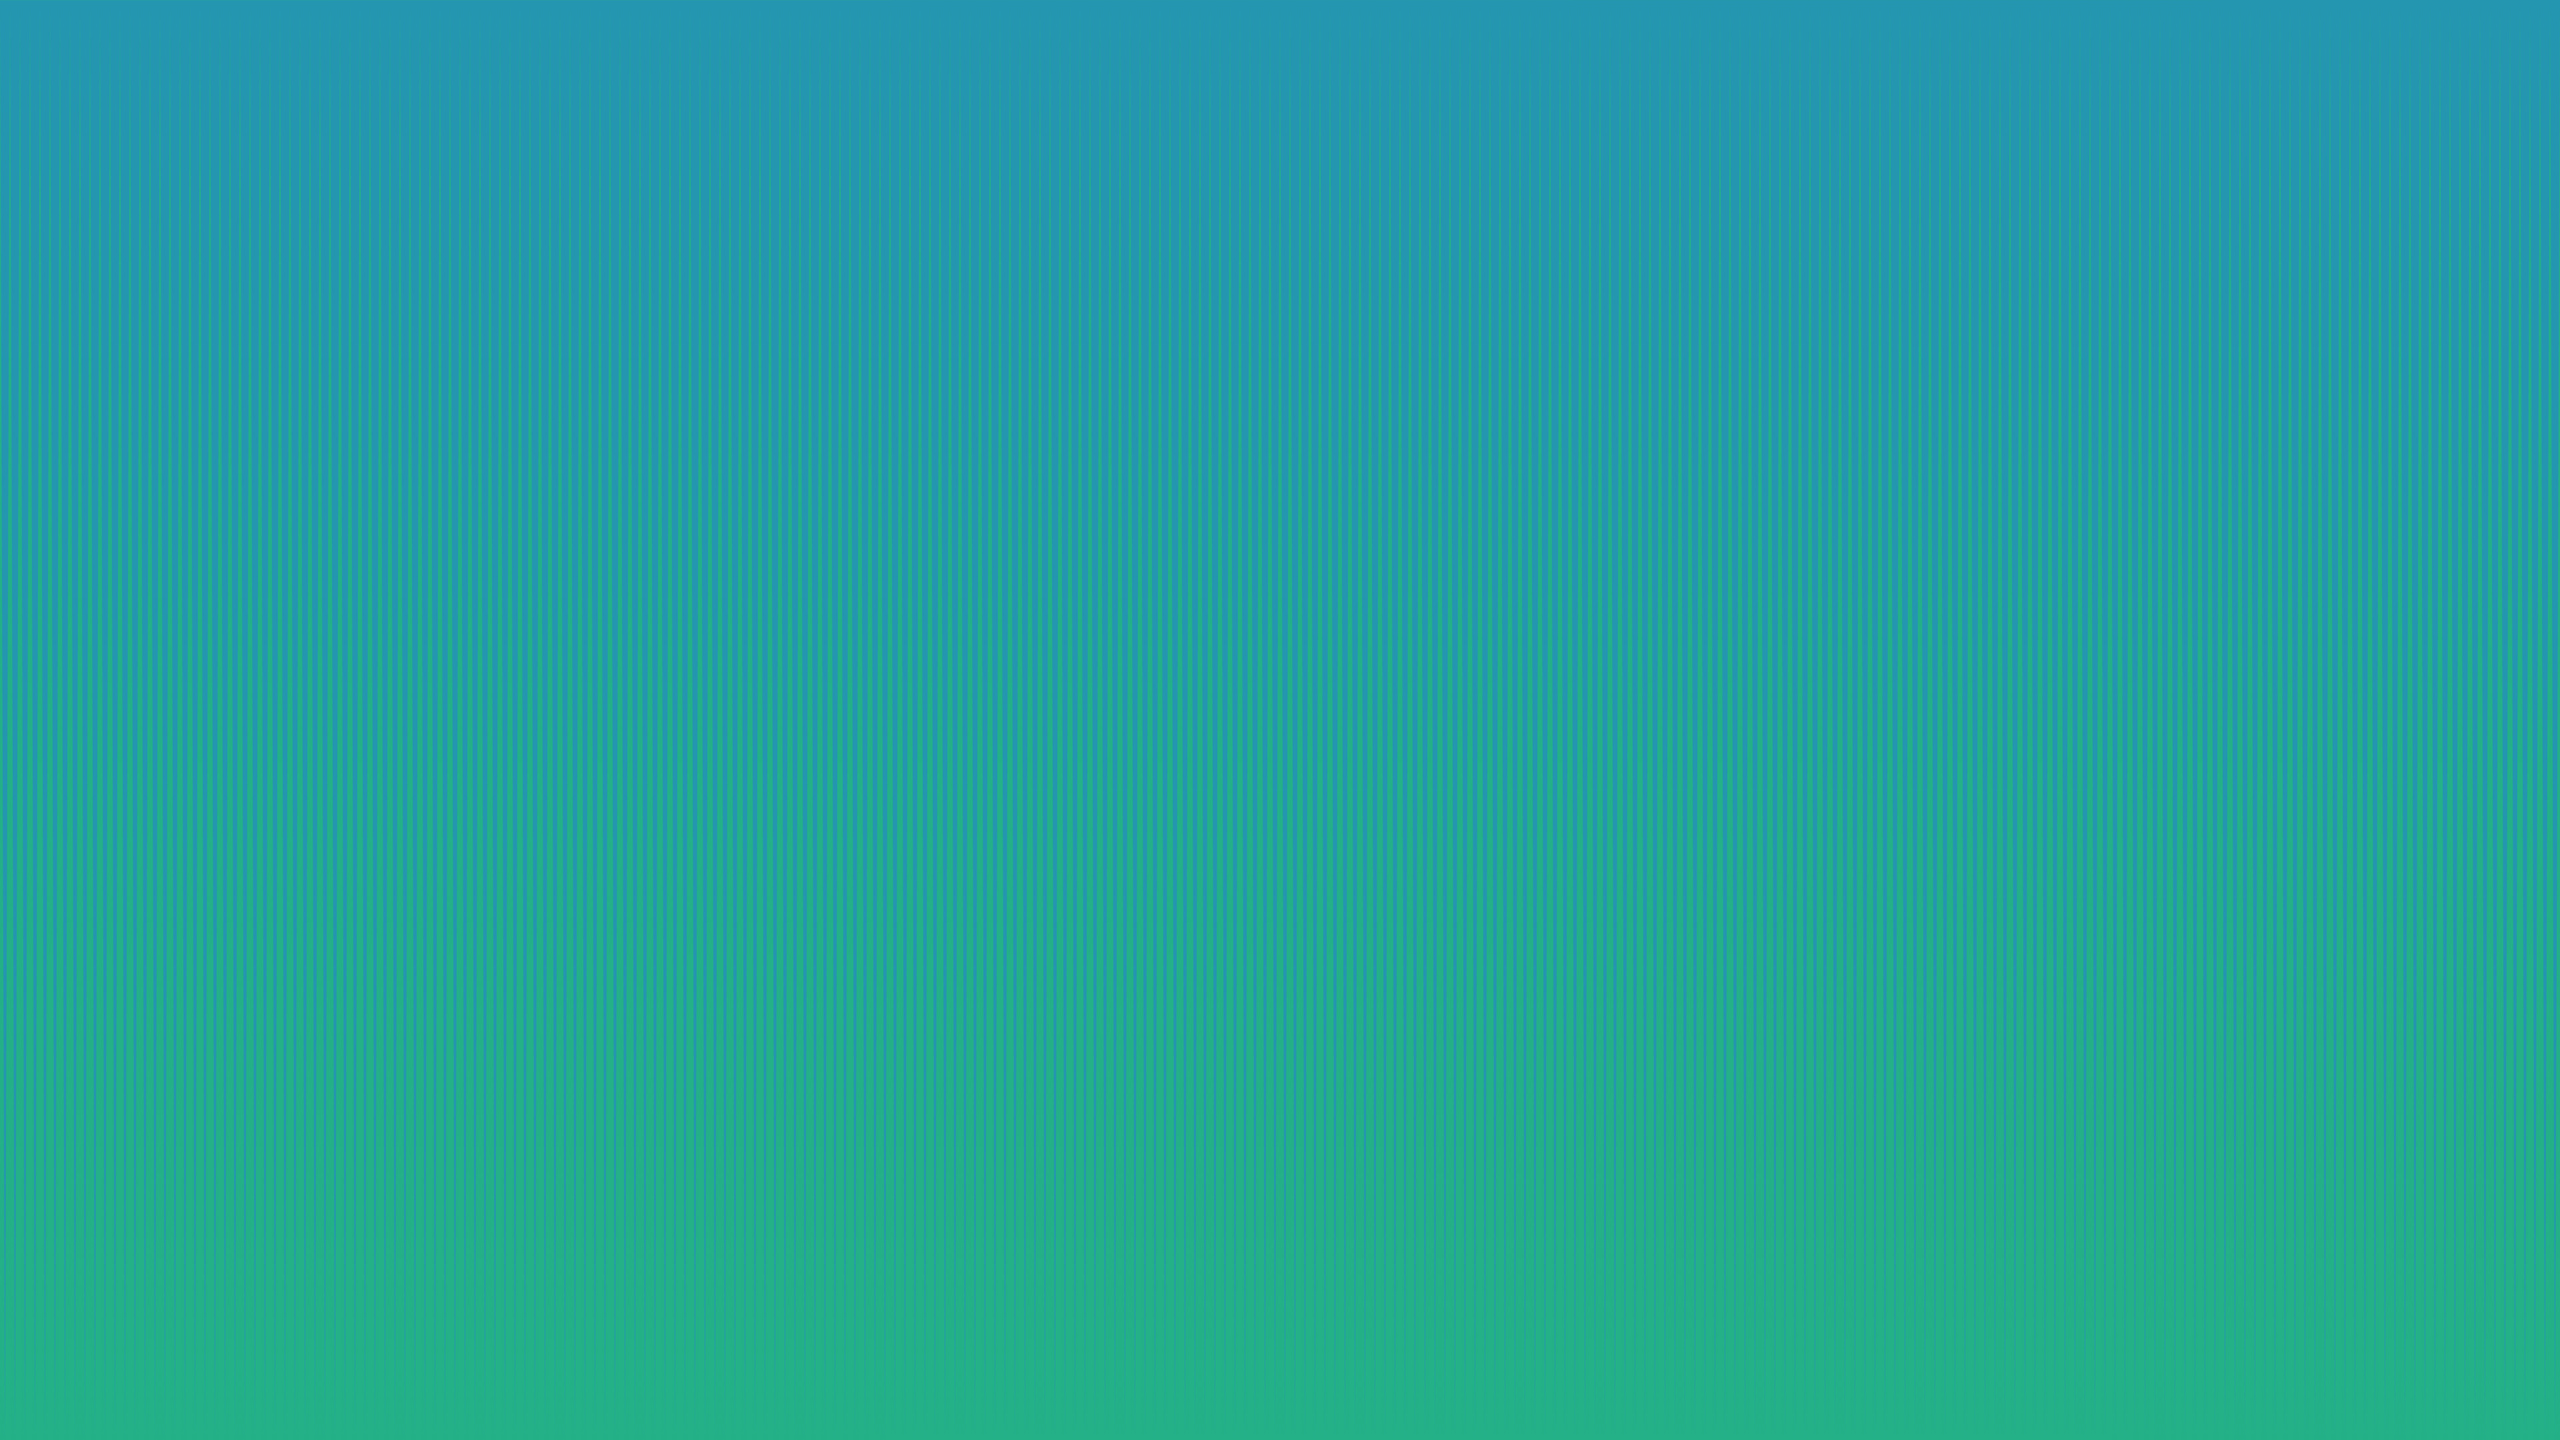 2560x1440 Blue Green Gradient Minimal 4k 1440p Resolution Hd